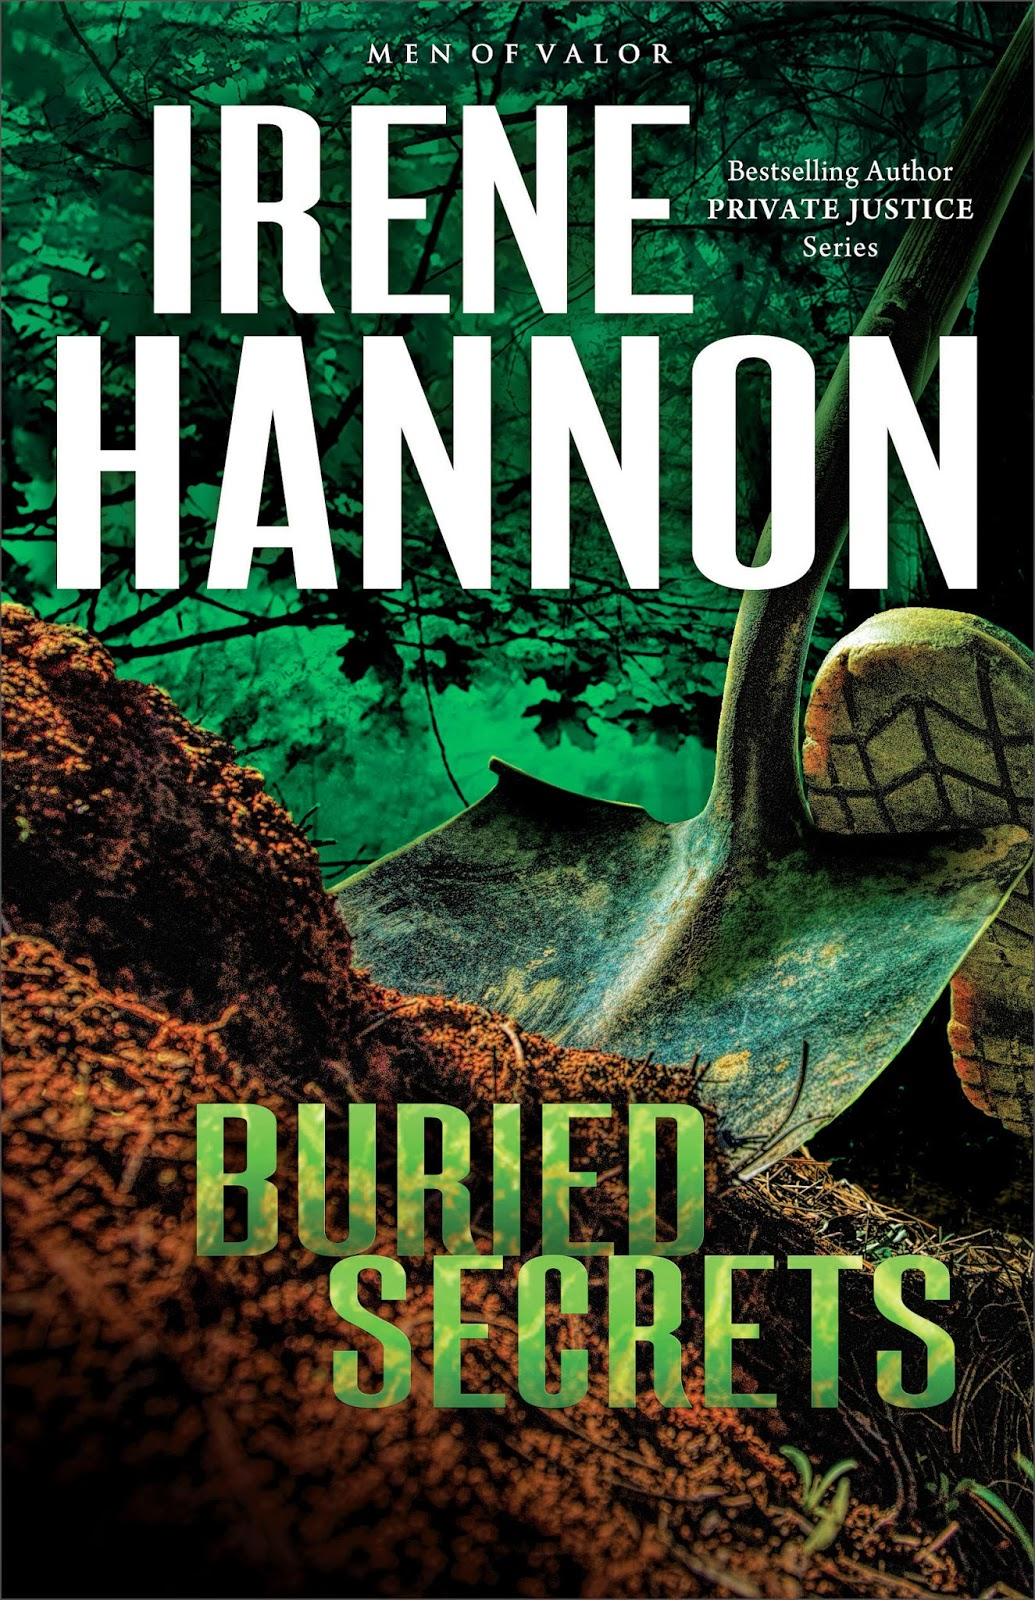 Spring Reads: Buried Secrets